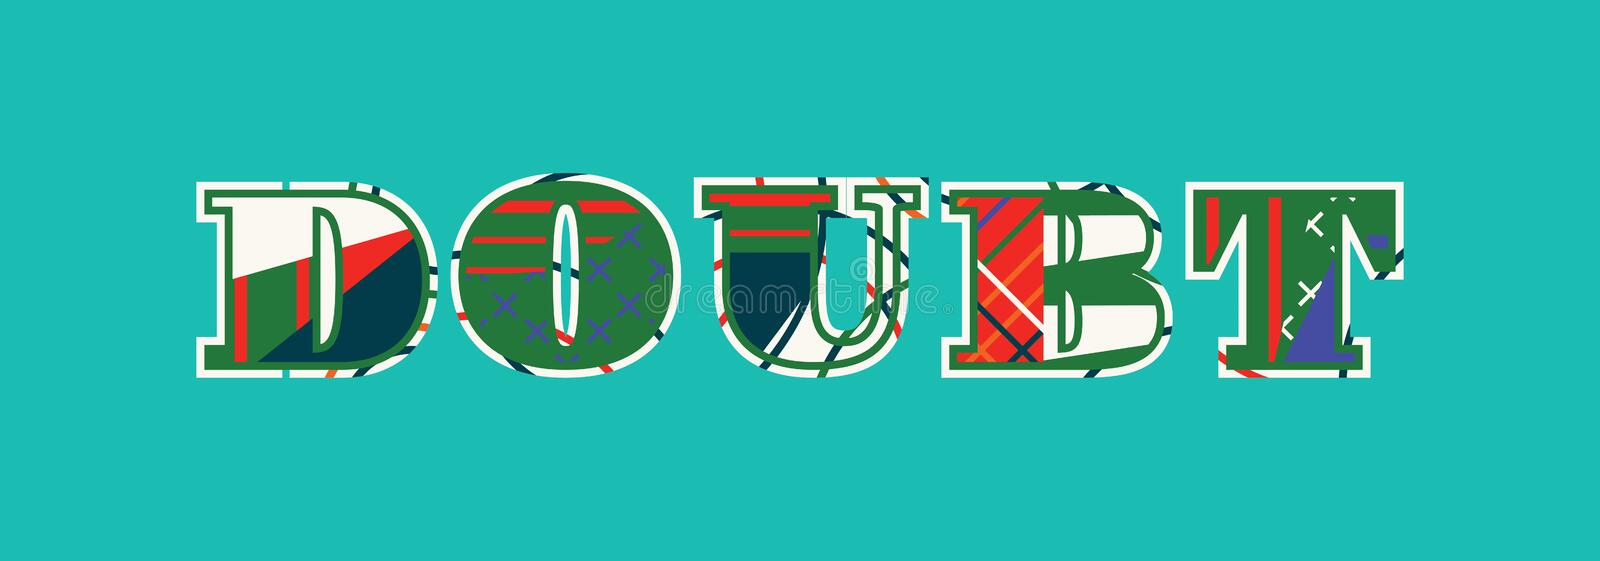 Doubt Concept Word Art Illustration. The word DOUBT concept written in colorful abstract typography. Vector EPS 10 available vector illustration